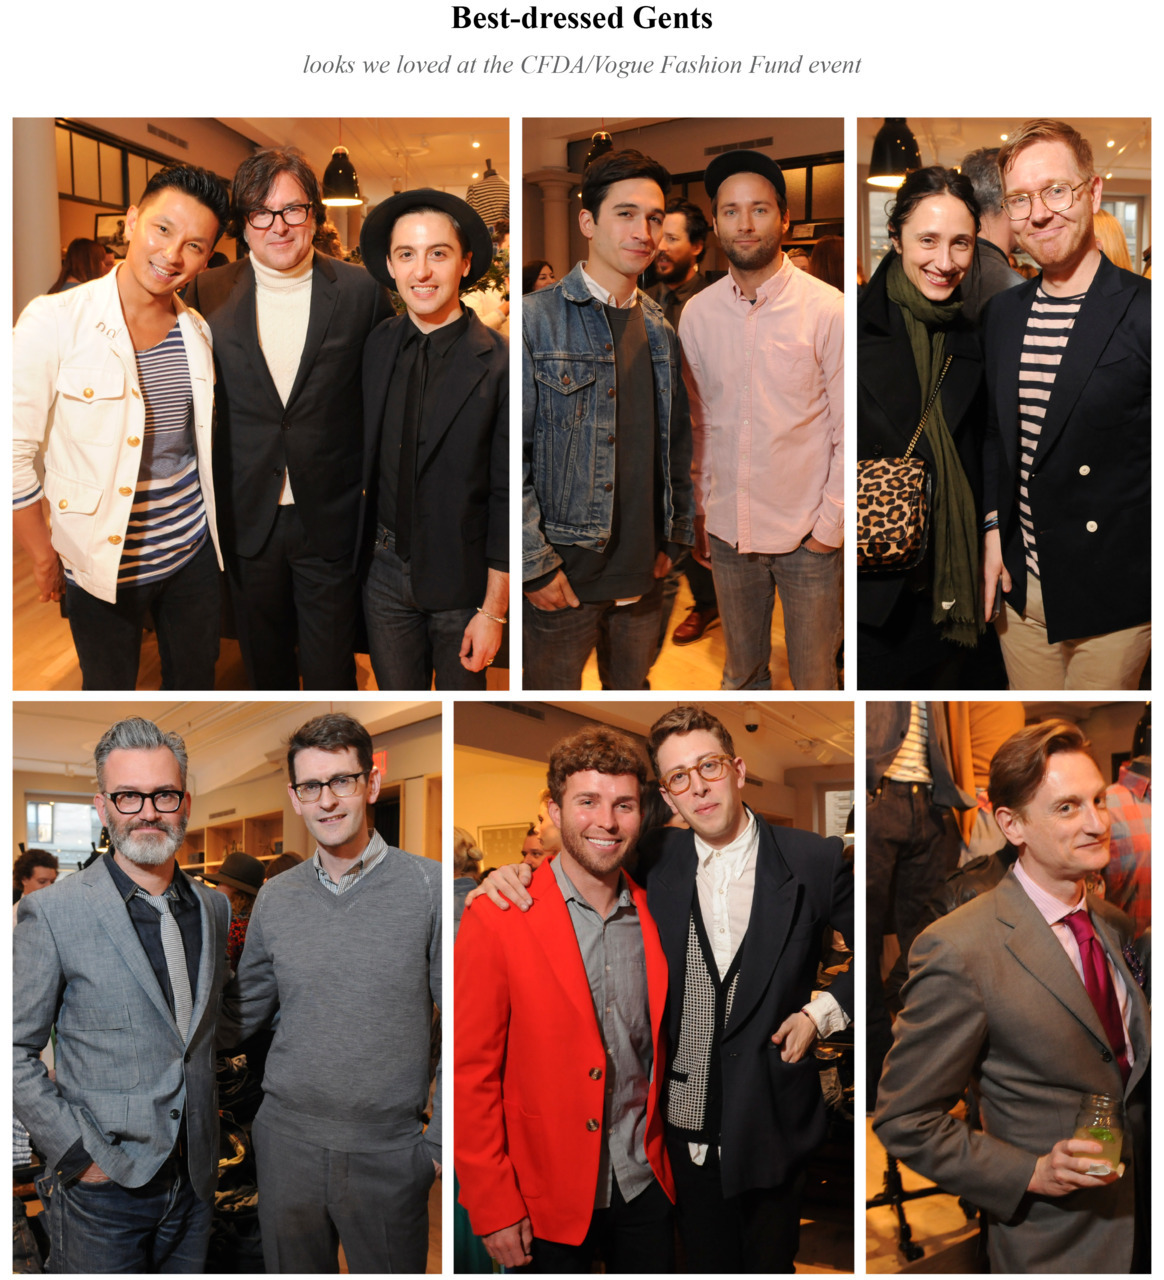 The men celebrating at the CFDA/Vogue Fashion Fund event had effortlessly laid-back styles—from stripes to perfectly worn-in jeans. (from left to right)- Prabal Gurung, Billy Reid and Eddie Borgo.- Jack McCollough and Lazaro Hernandez (Proenza Schouler).- Preppy with a twist (Nicole Phelps on your arm wearing a chic bag doesn't hurt either).- J.Crew's Frank Muytjens and Mark Holgate were cool in charcoal. -Timo Weiland and Alan Eckstein put a twist on American classics. - Hamish Bowles looked dapper. (photo credit: Hannah Thomson for J.Crew)